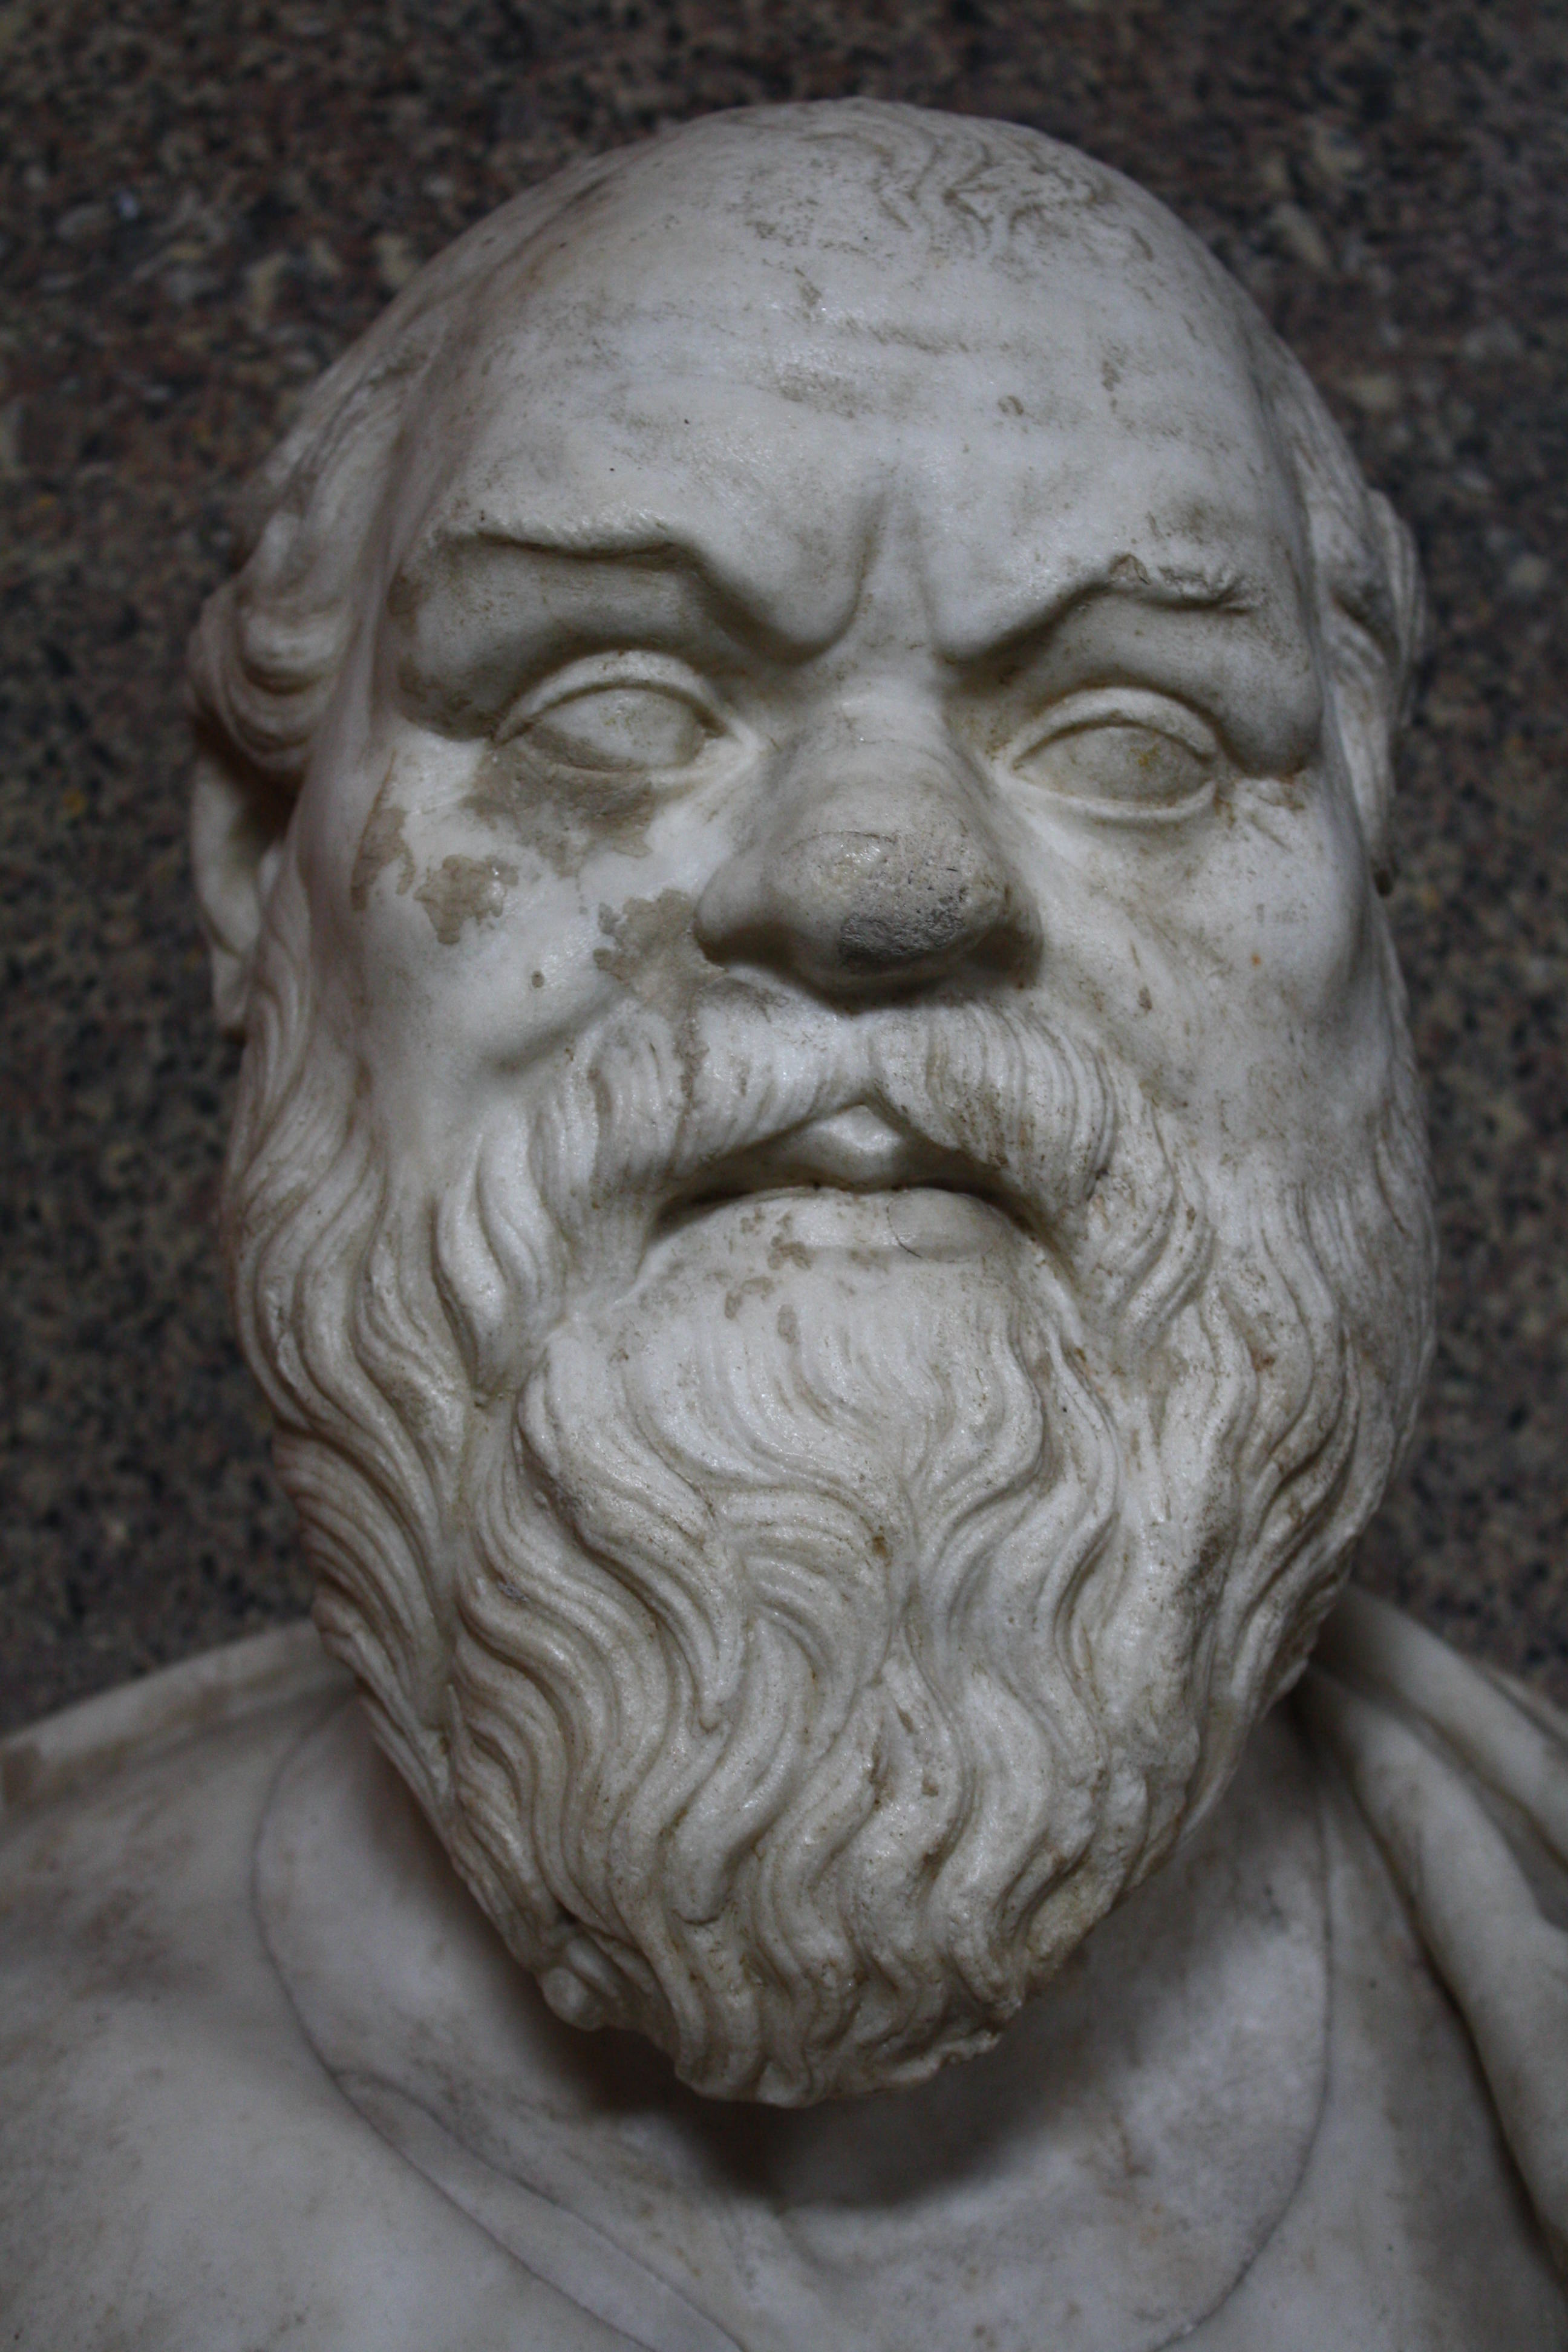 How is Plato important to philosophy?